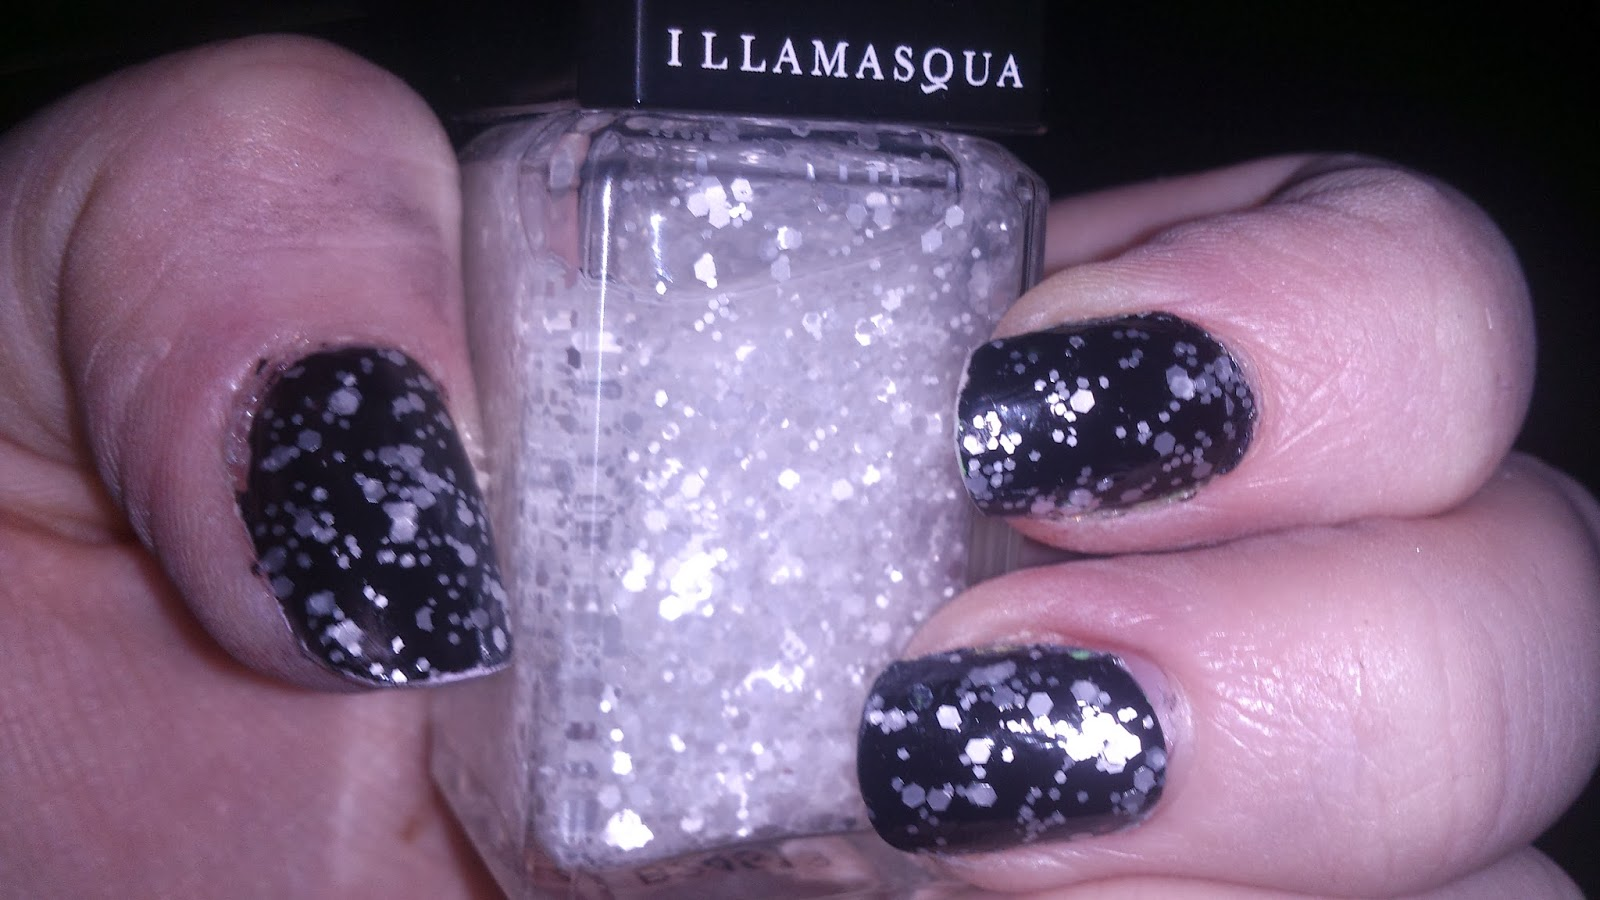 Have yourself a selfish little christmas with illamasqua one coat is all you need for easy nail art for the party season wear alone for a subtle shimmer or over boosh black nail polish to really stand out solutioingenieria Gallery